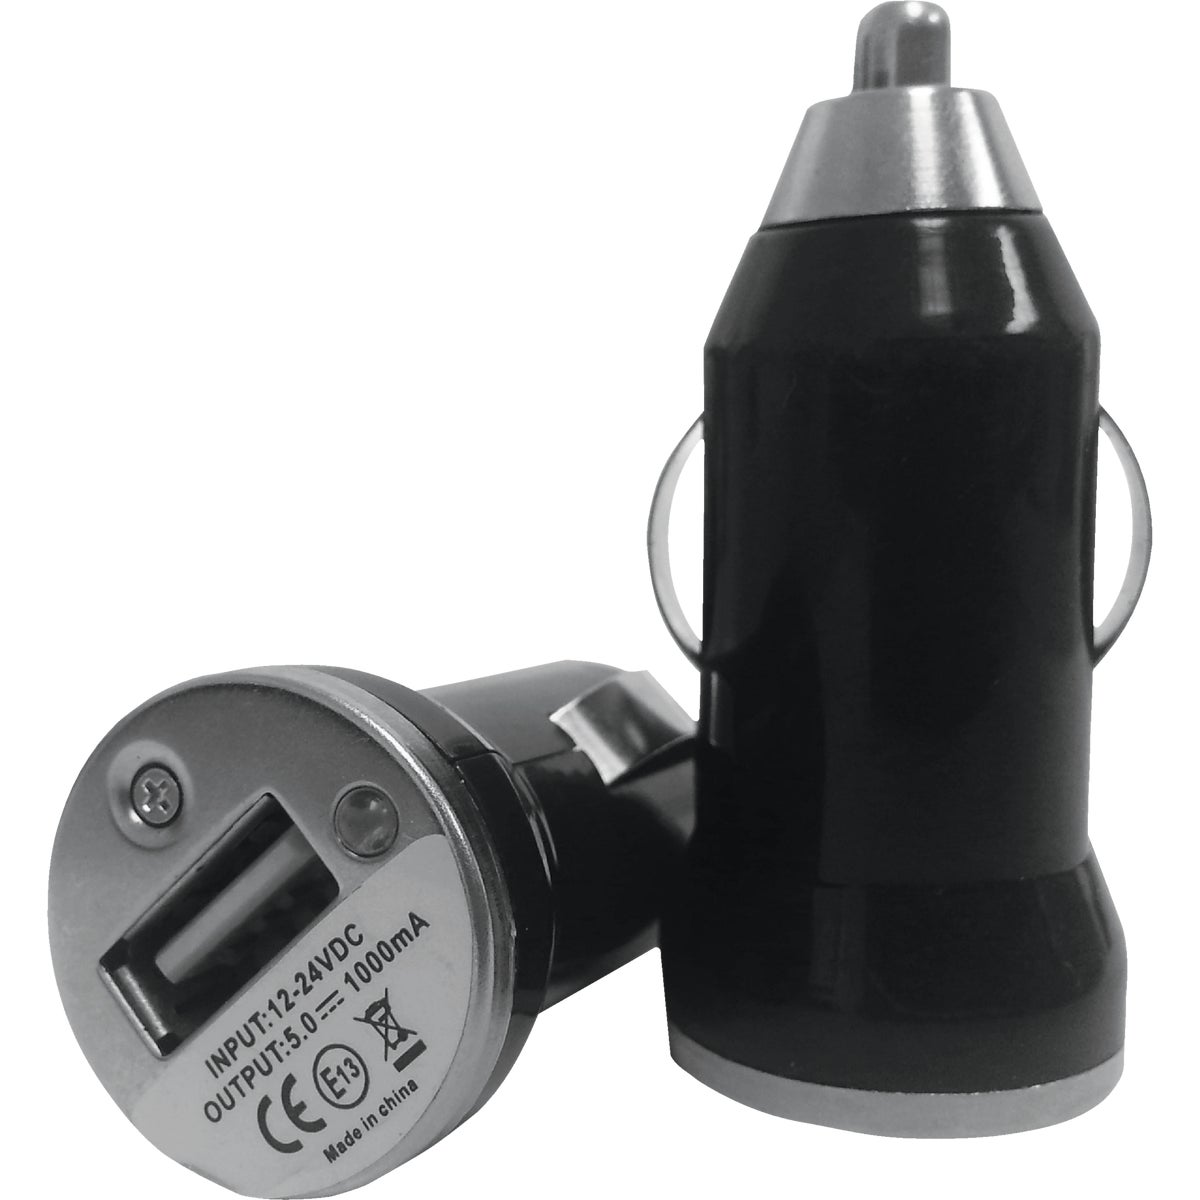 CAR CHARGER ADAPTOR